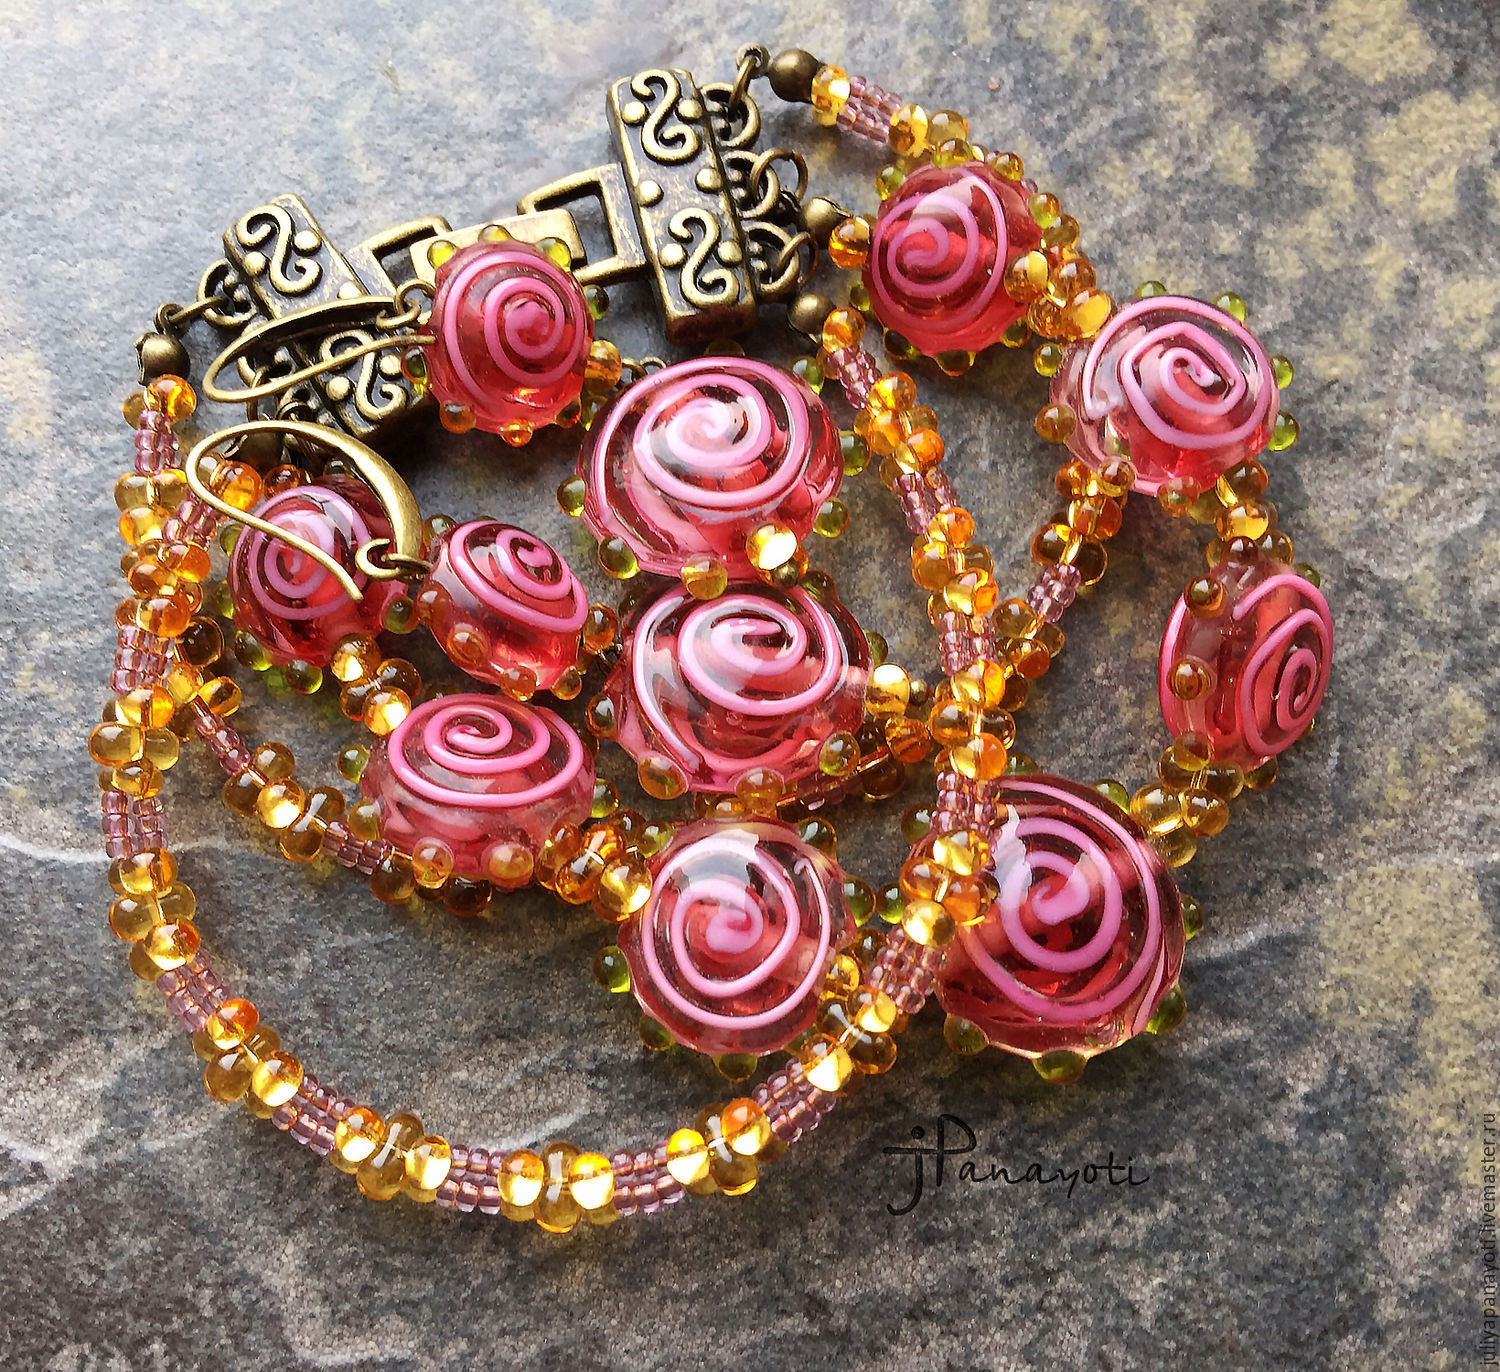 Bracelet and earrings 'Tea rose', Bead bracelet, Murmansk,  Фото №1